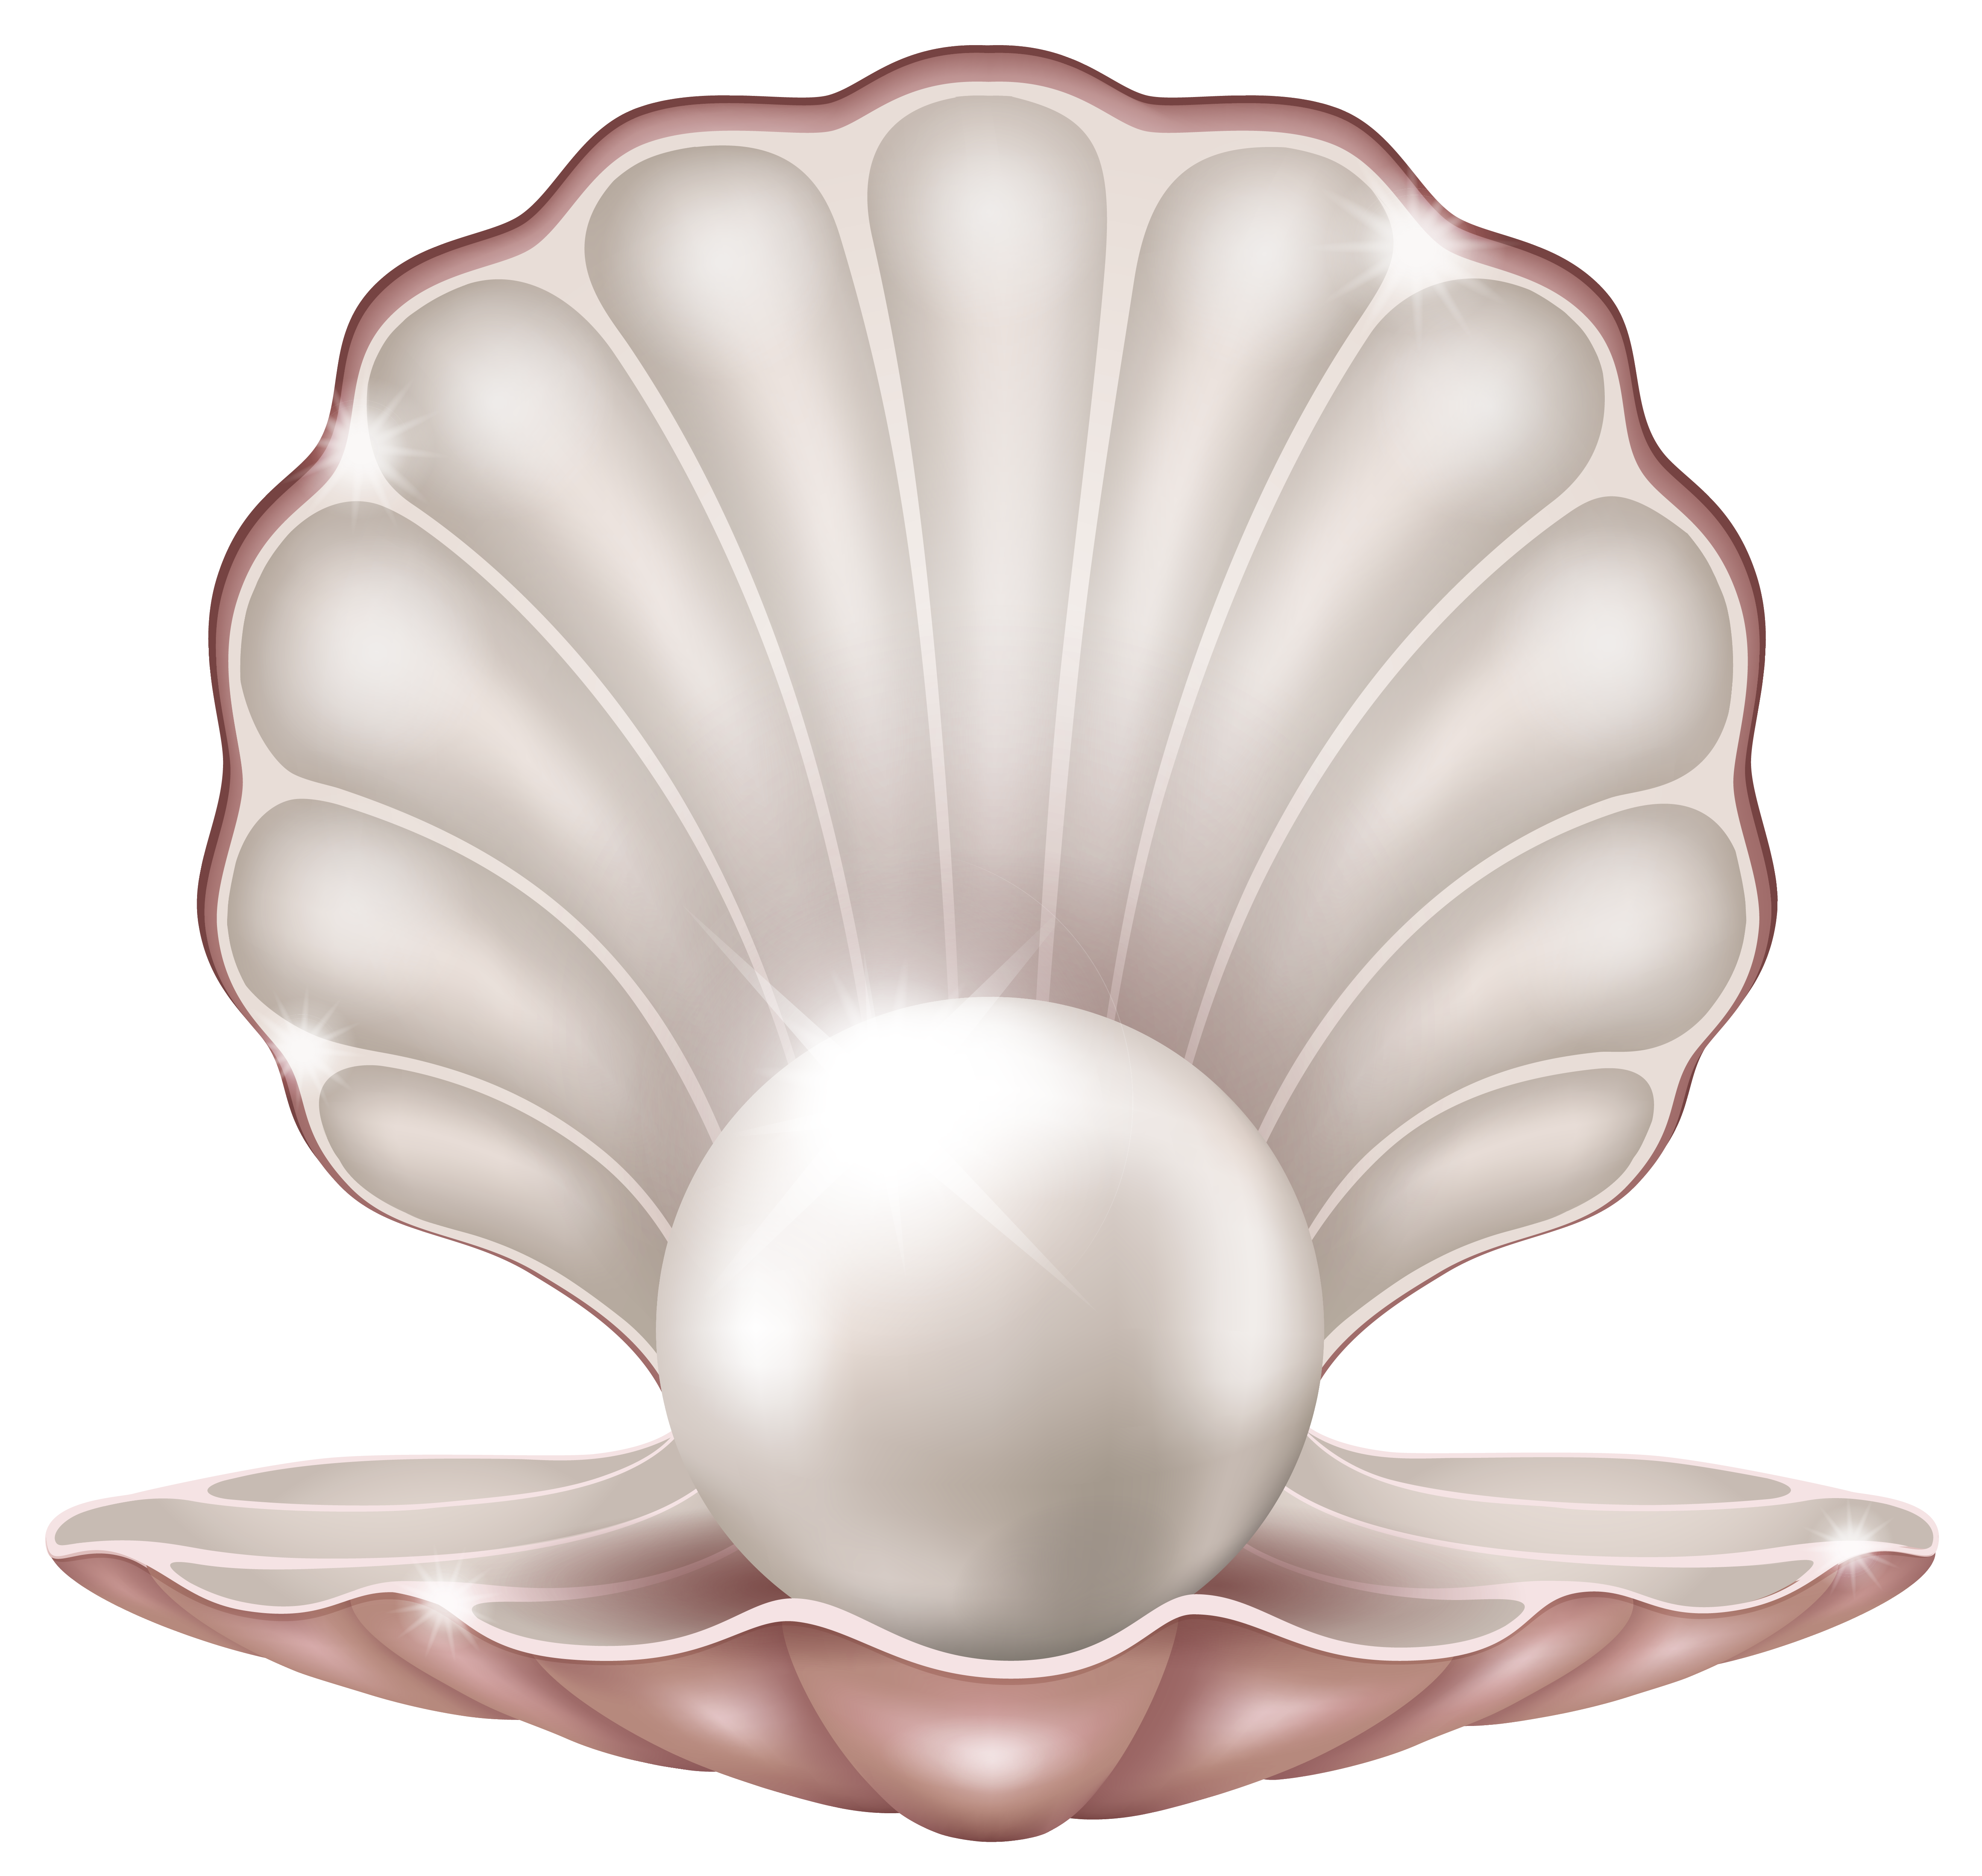 Beautiful Clam With Pearl Png Clipart Image Gallery Yopriceville High Quality Images And Transparent Png Free Clip Silhouette Frames Clipart Images Shells